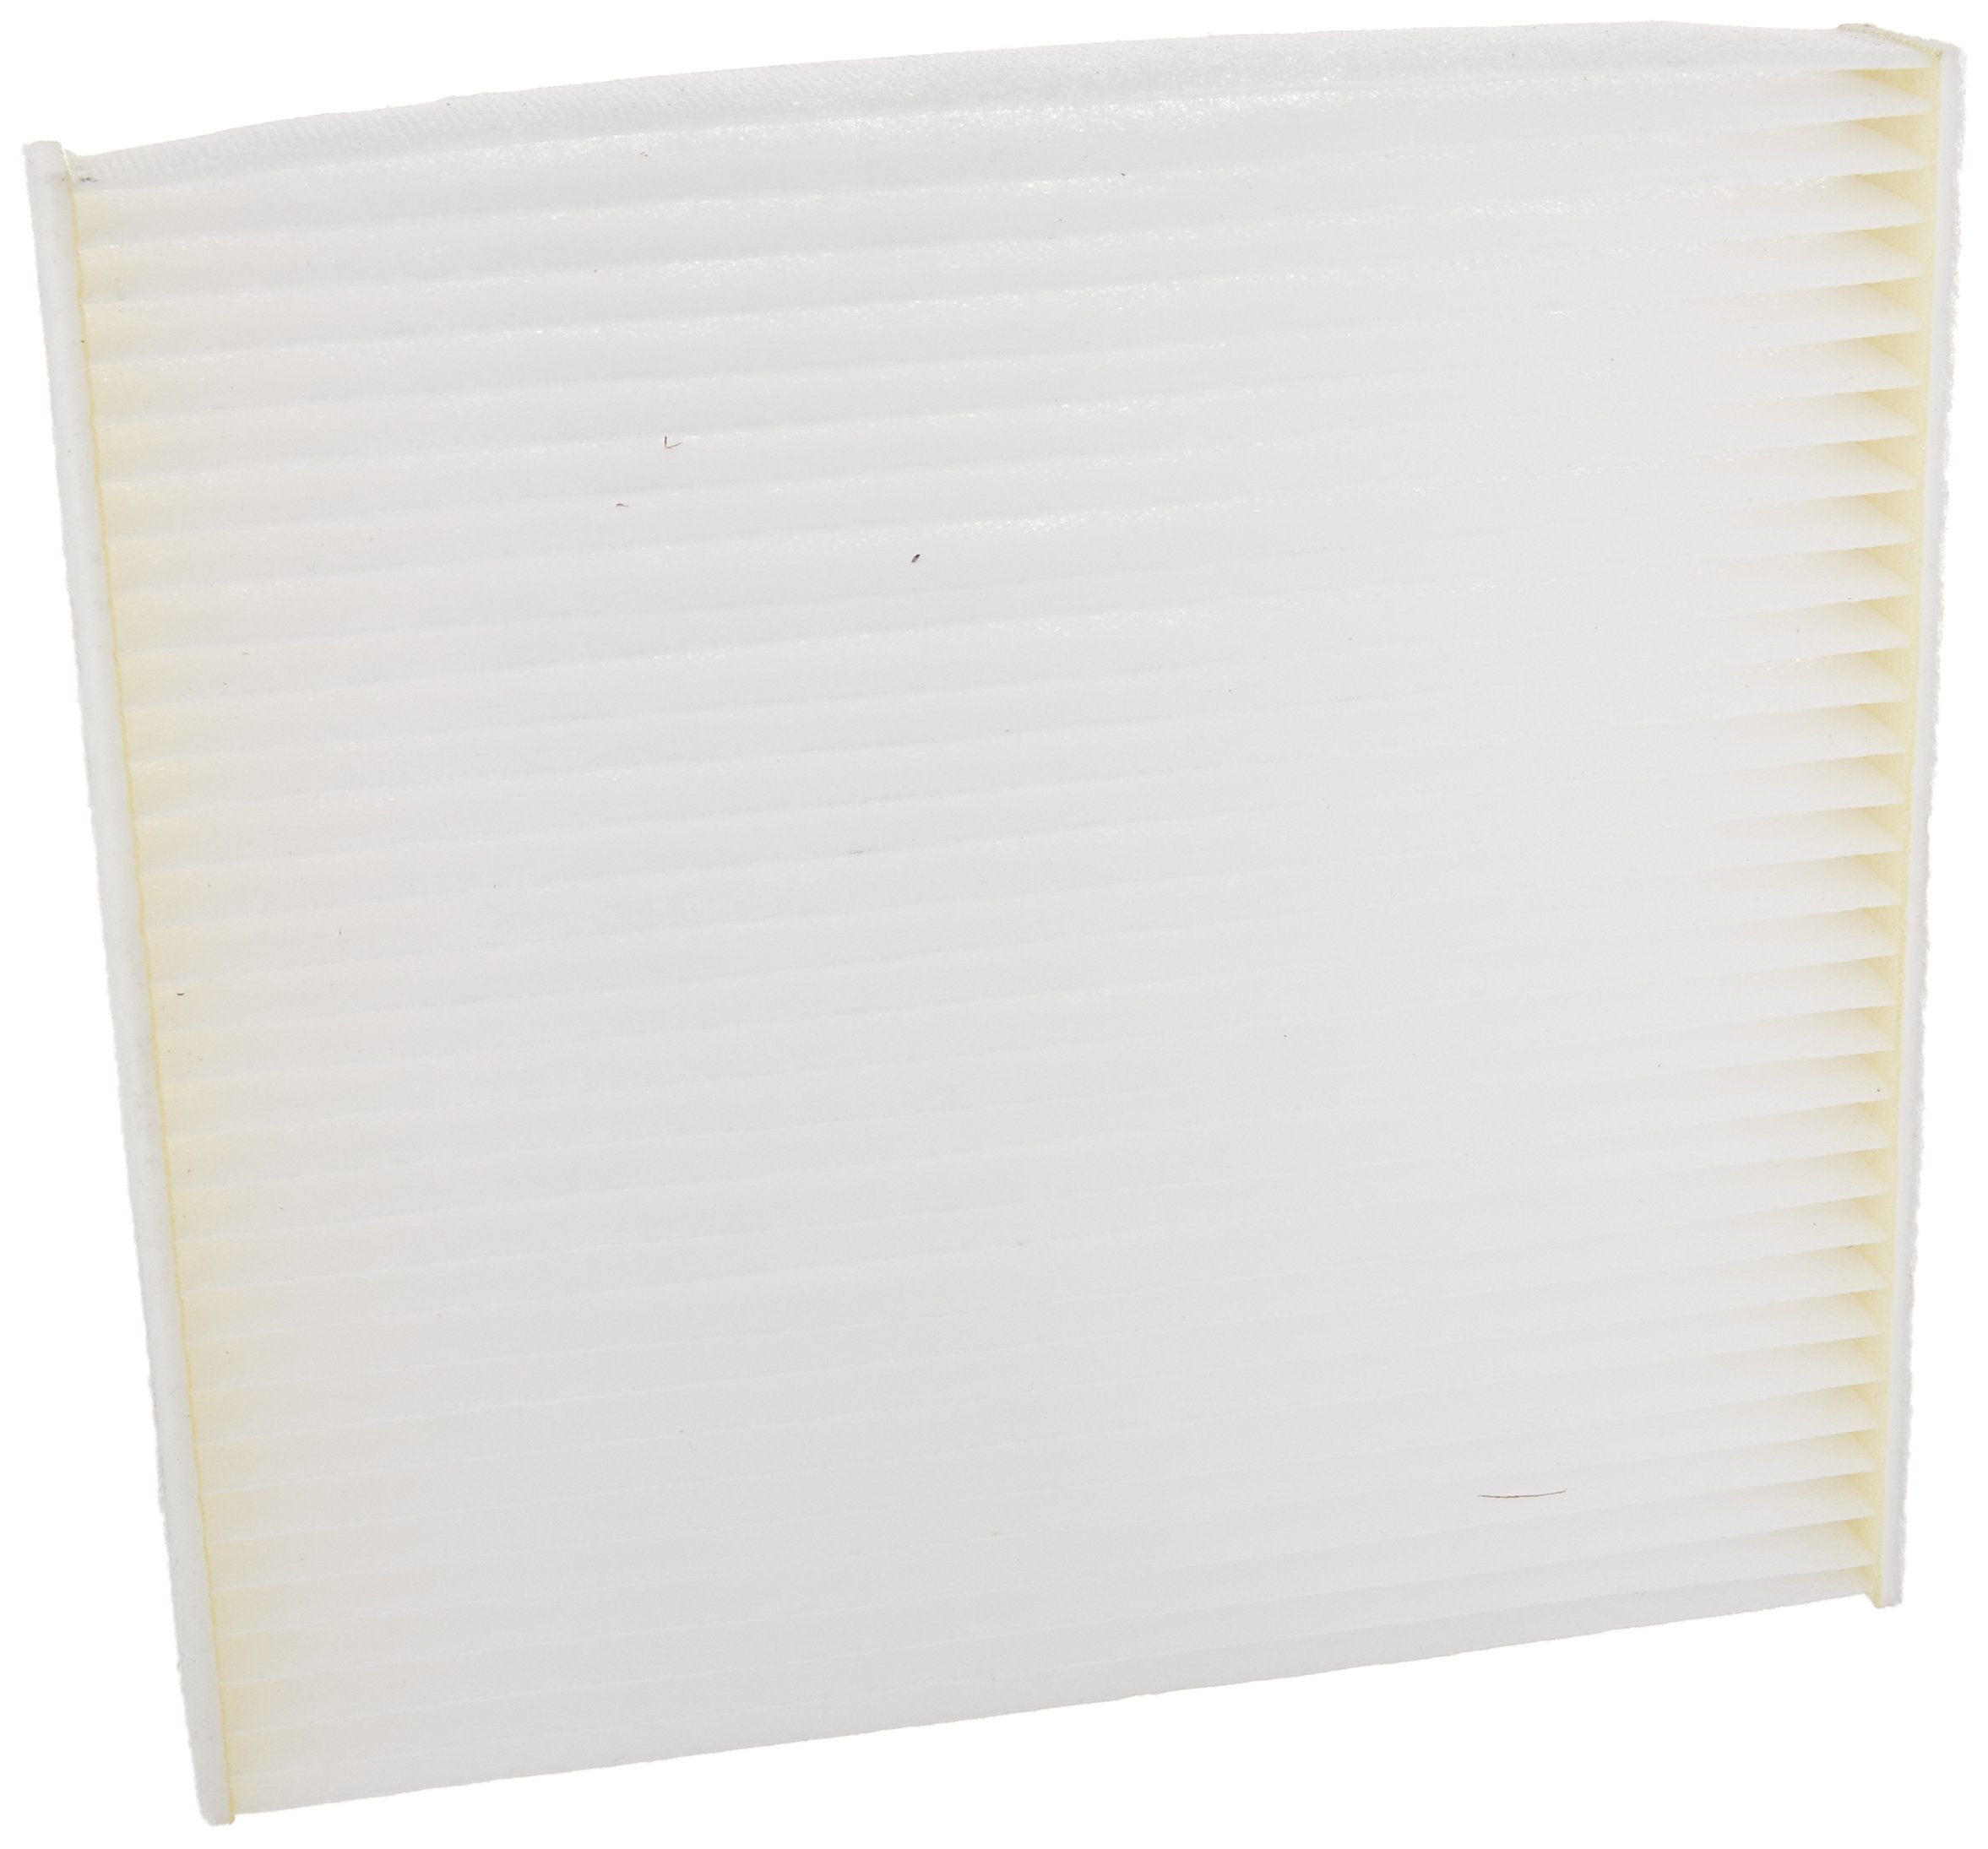 Toyota 87139-07020 Cabin Air Filter by Toyota